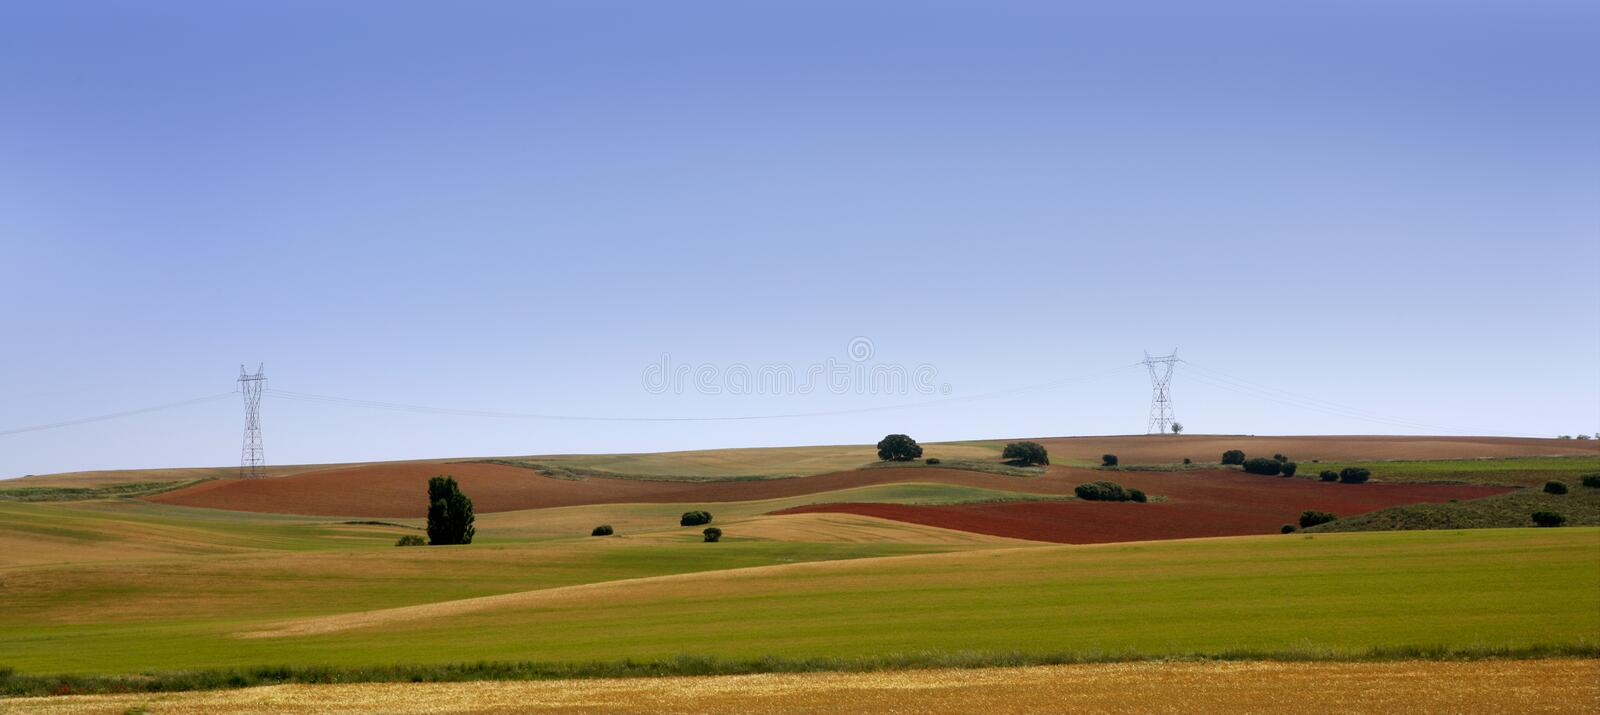 Golden and green cereal fields landscapes royalty free stock images